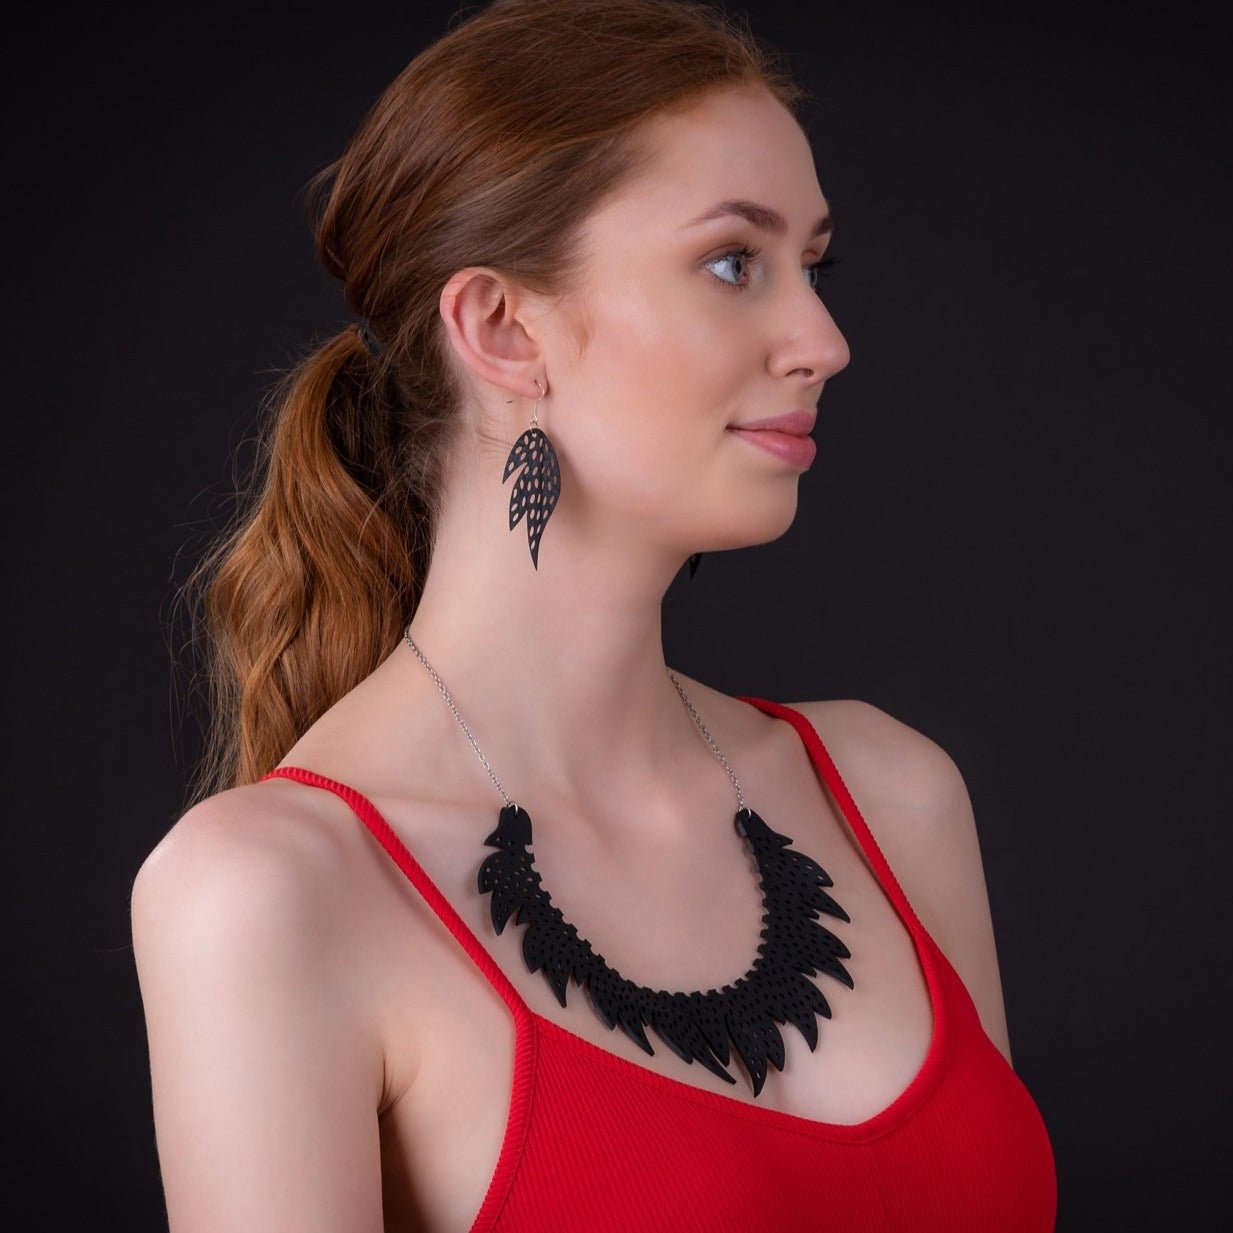 Sunburst Recycled Rubber Earrings by Paguro Upcycle